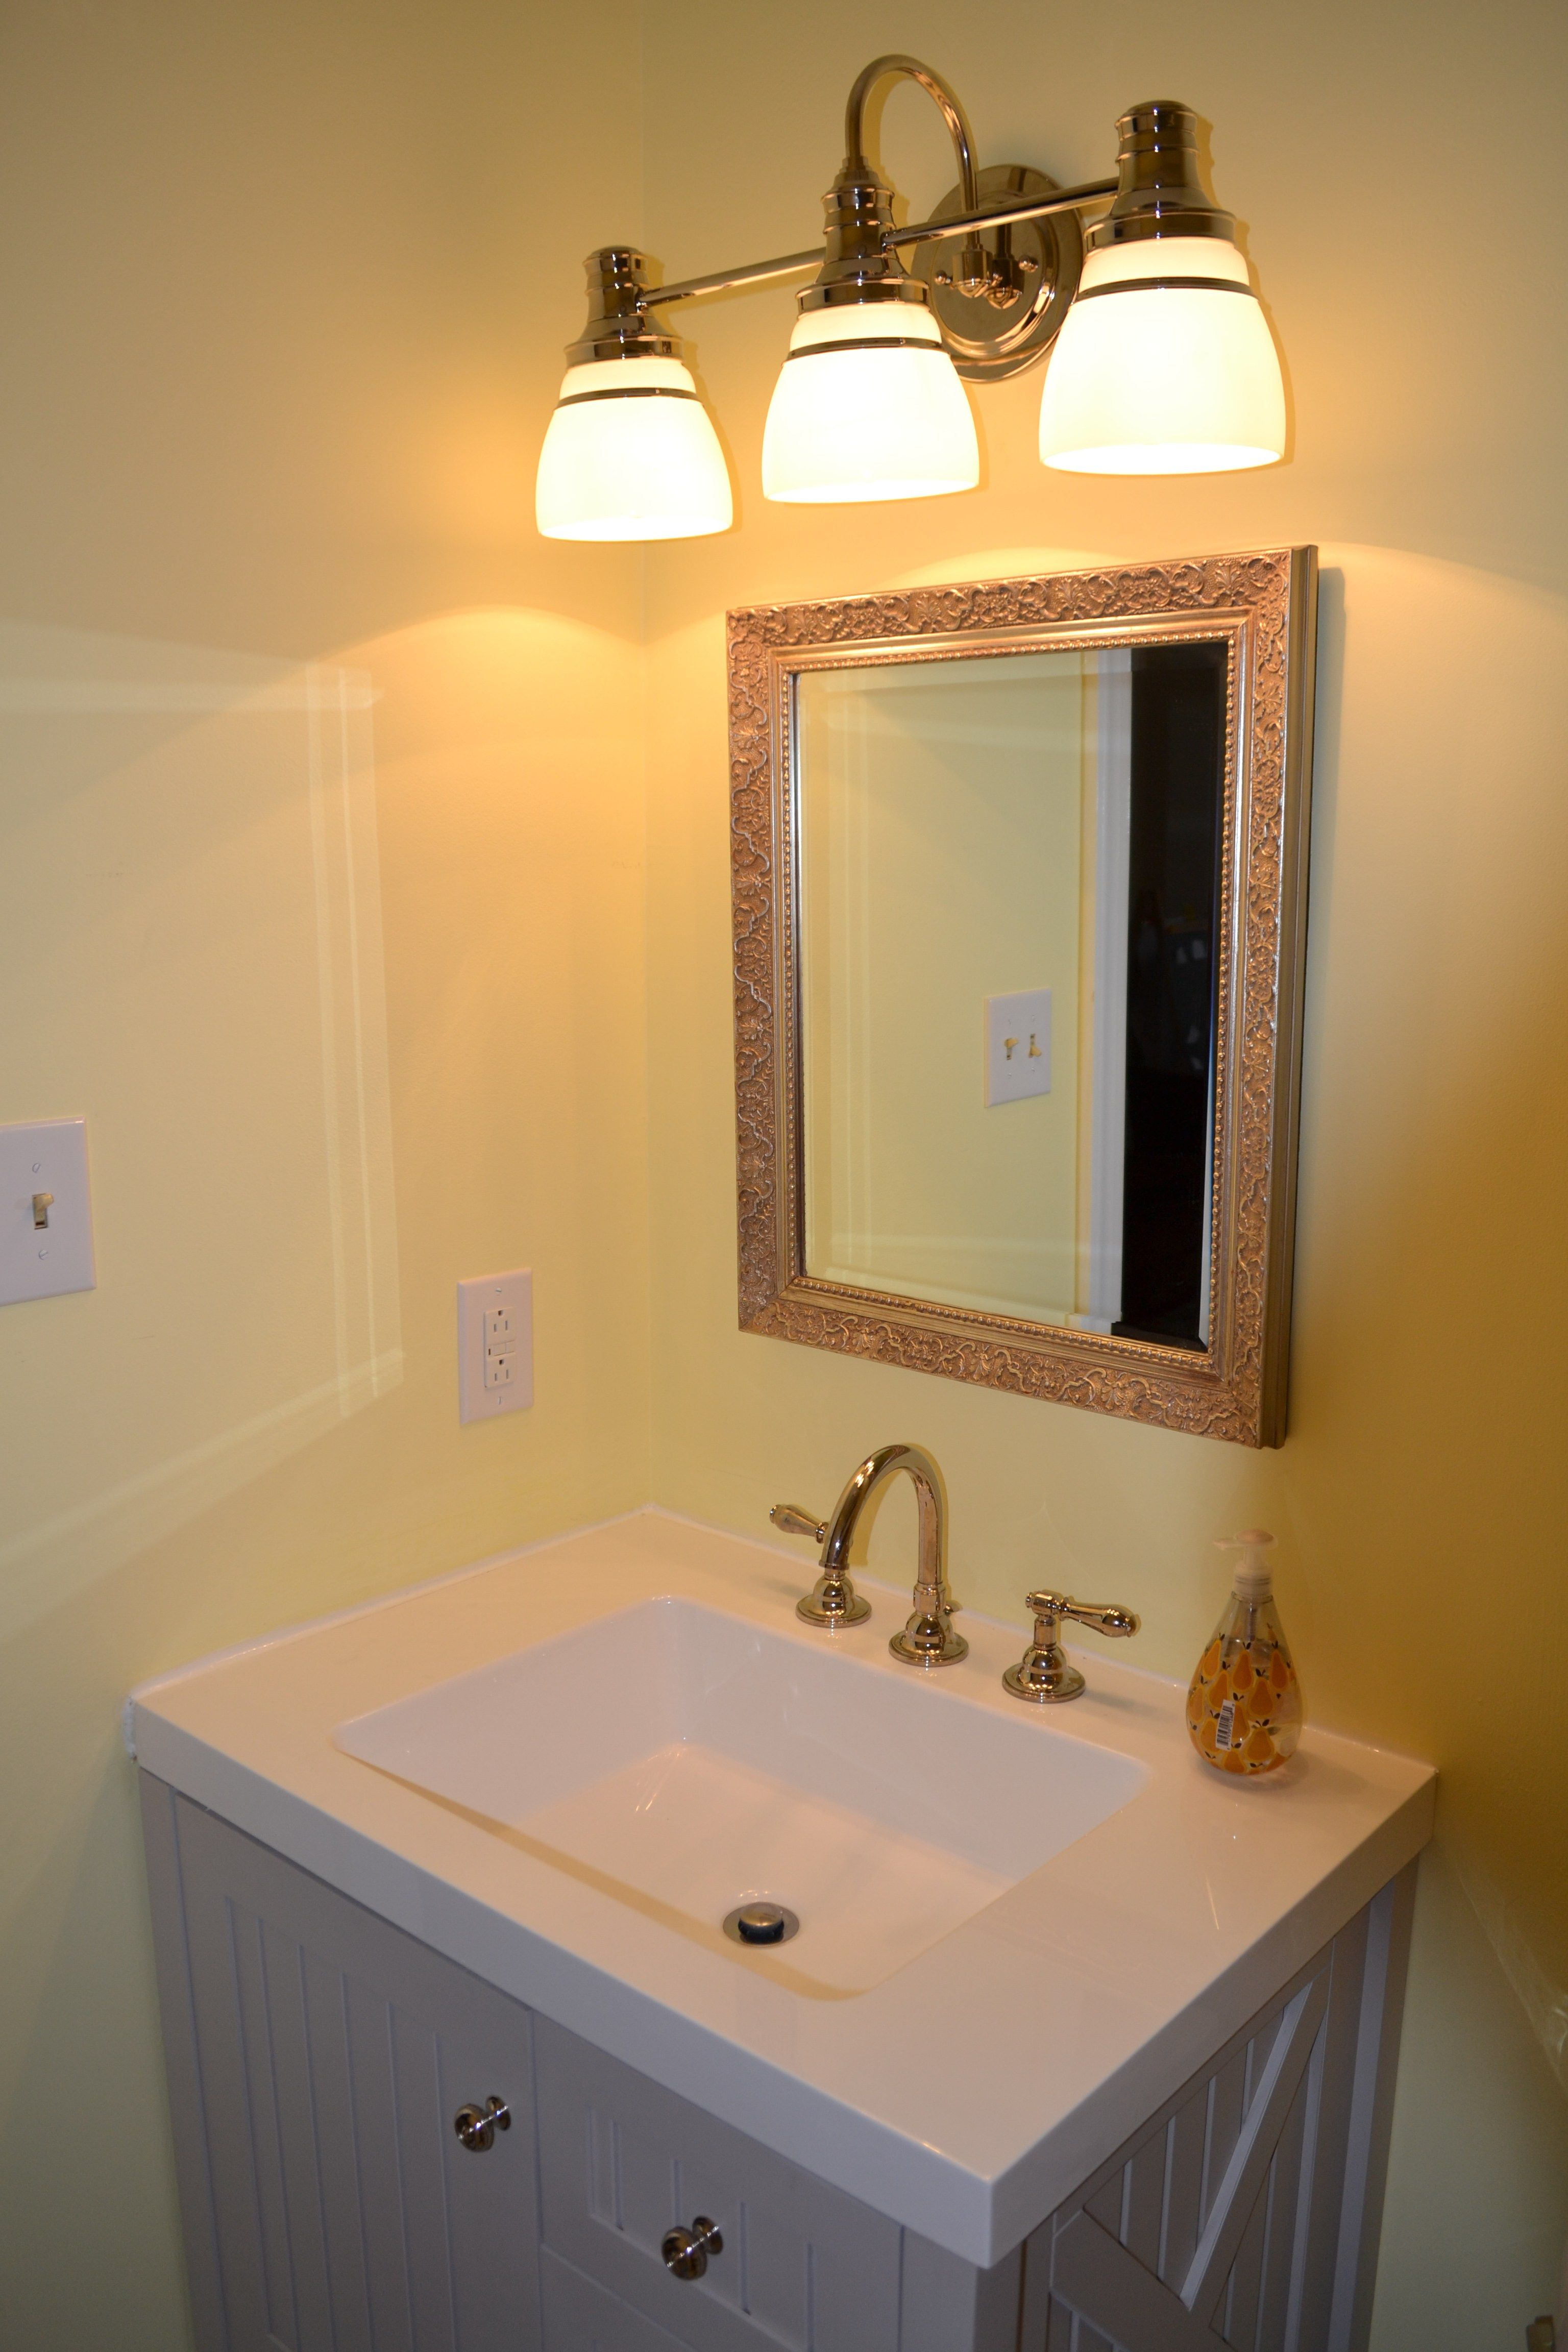 8 Ways to Prettify Bathroom Without Repacking Bathroom